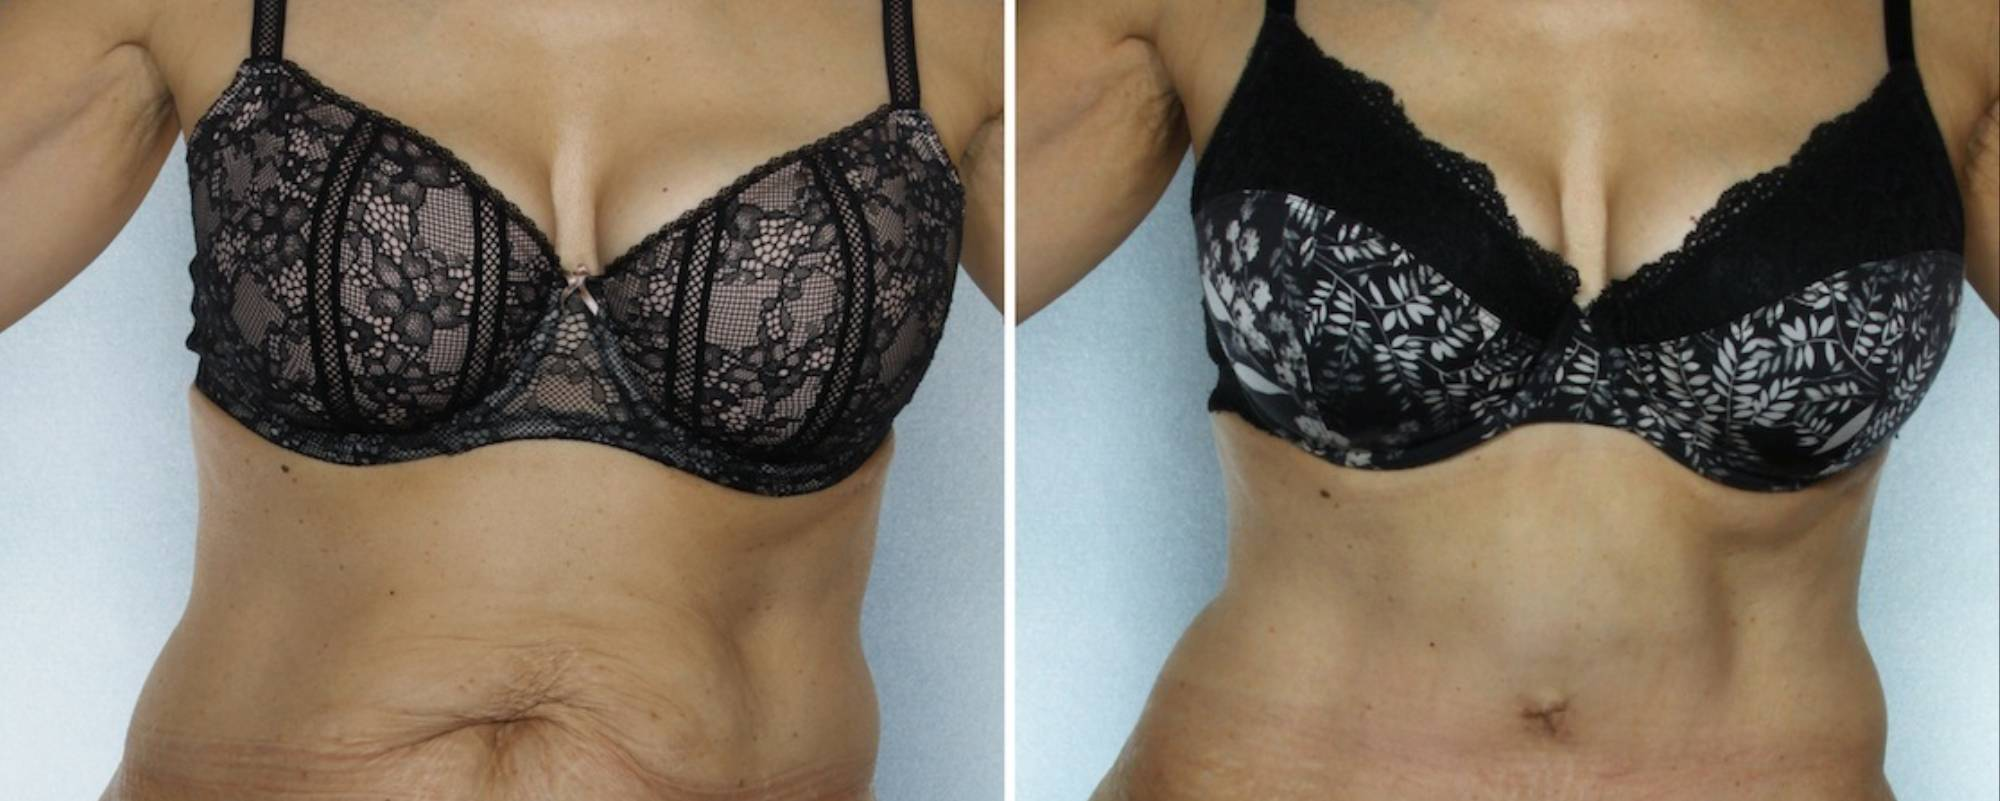 The Strange, Sensitive World of Plastic Surgery Photography